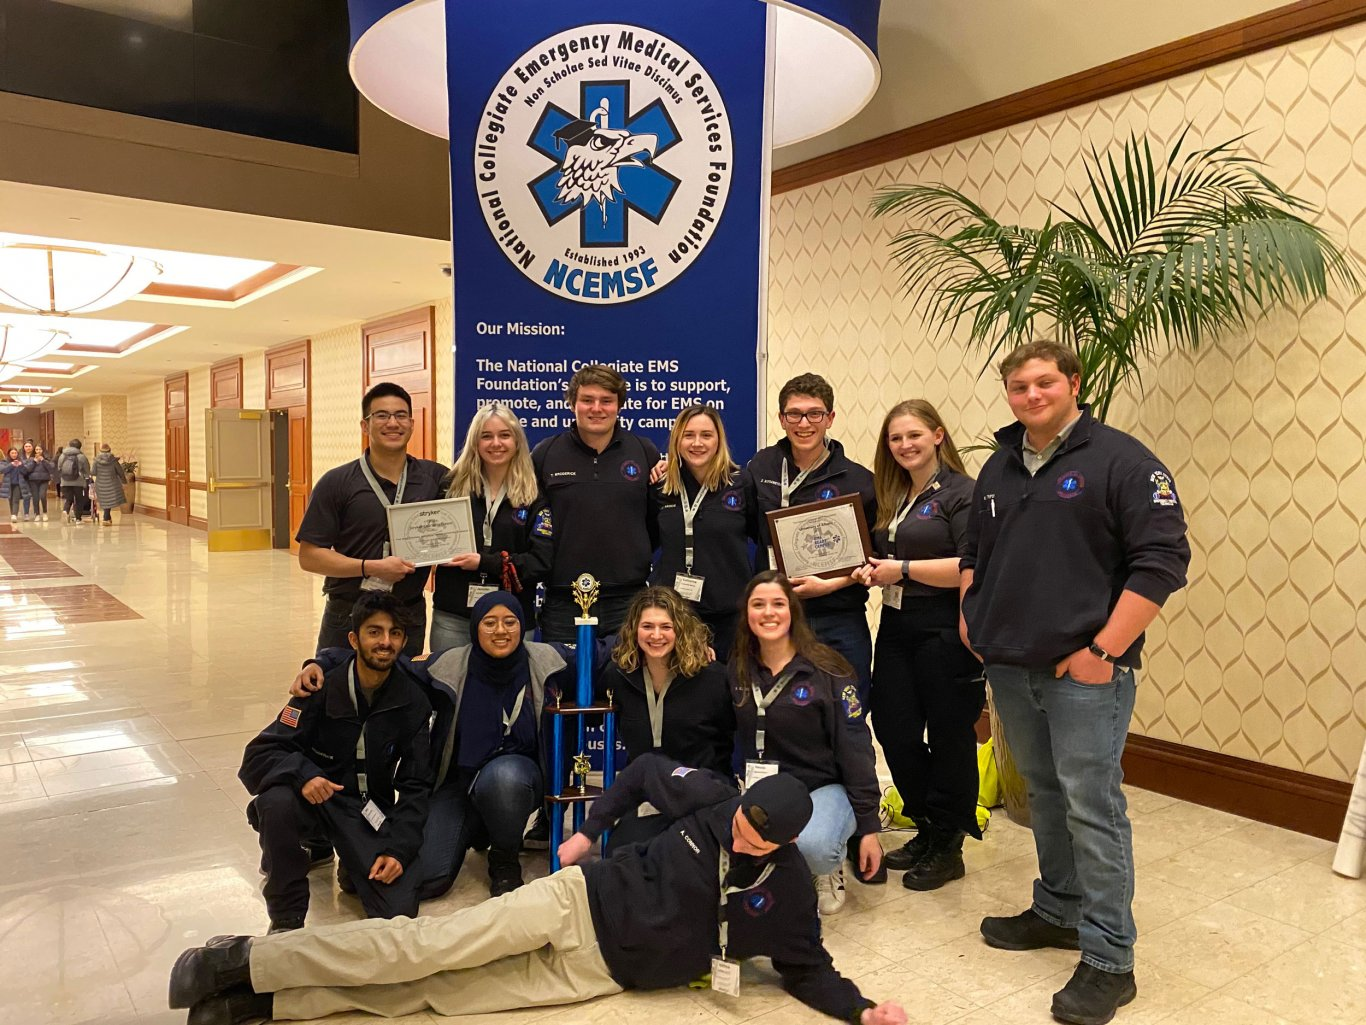 Twelve Five Quad volunteers pose for a photo with plaques and a trophy in front of a National Collegiate EMS Foundation sign